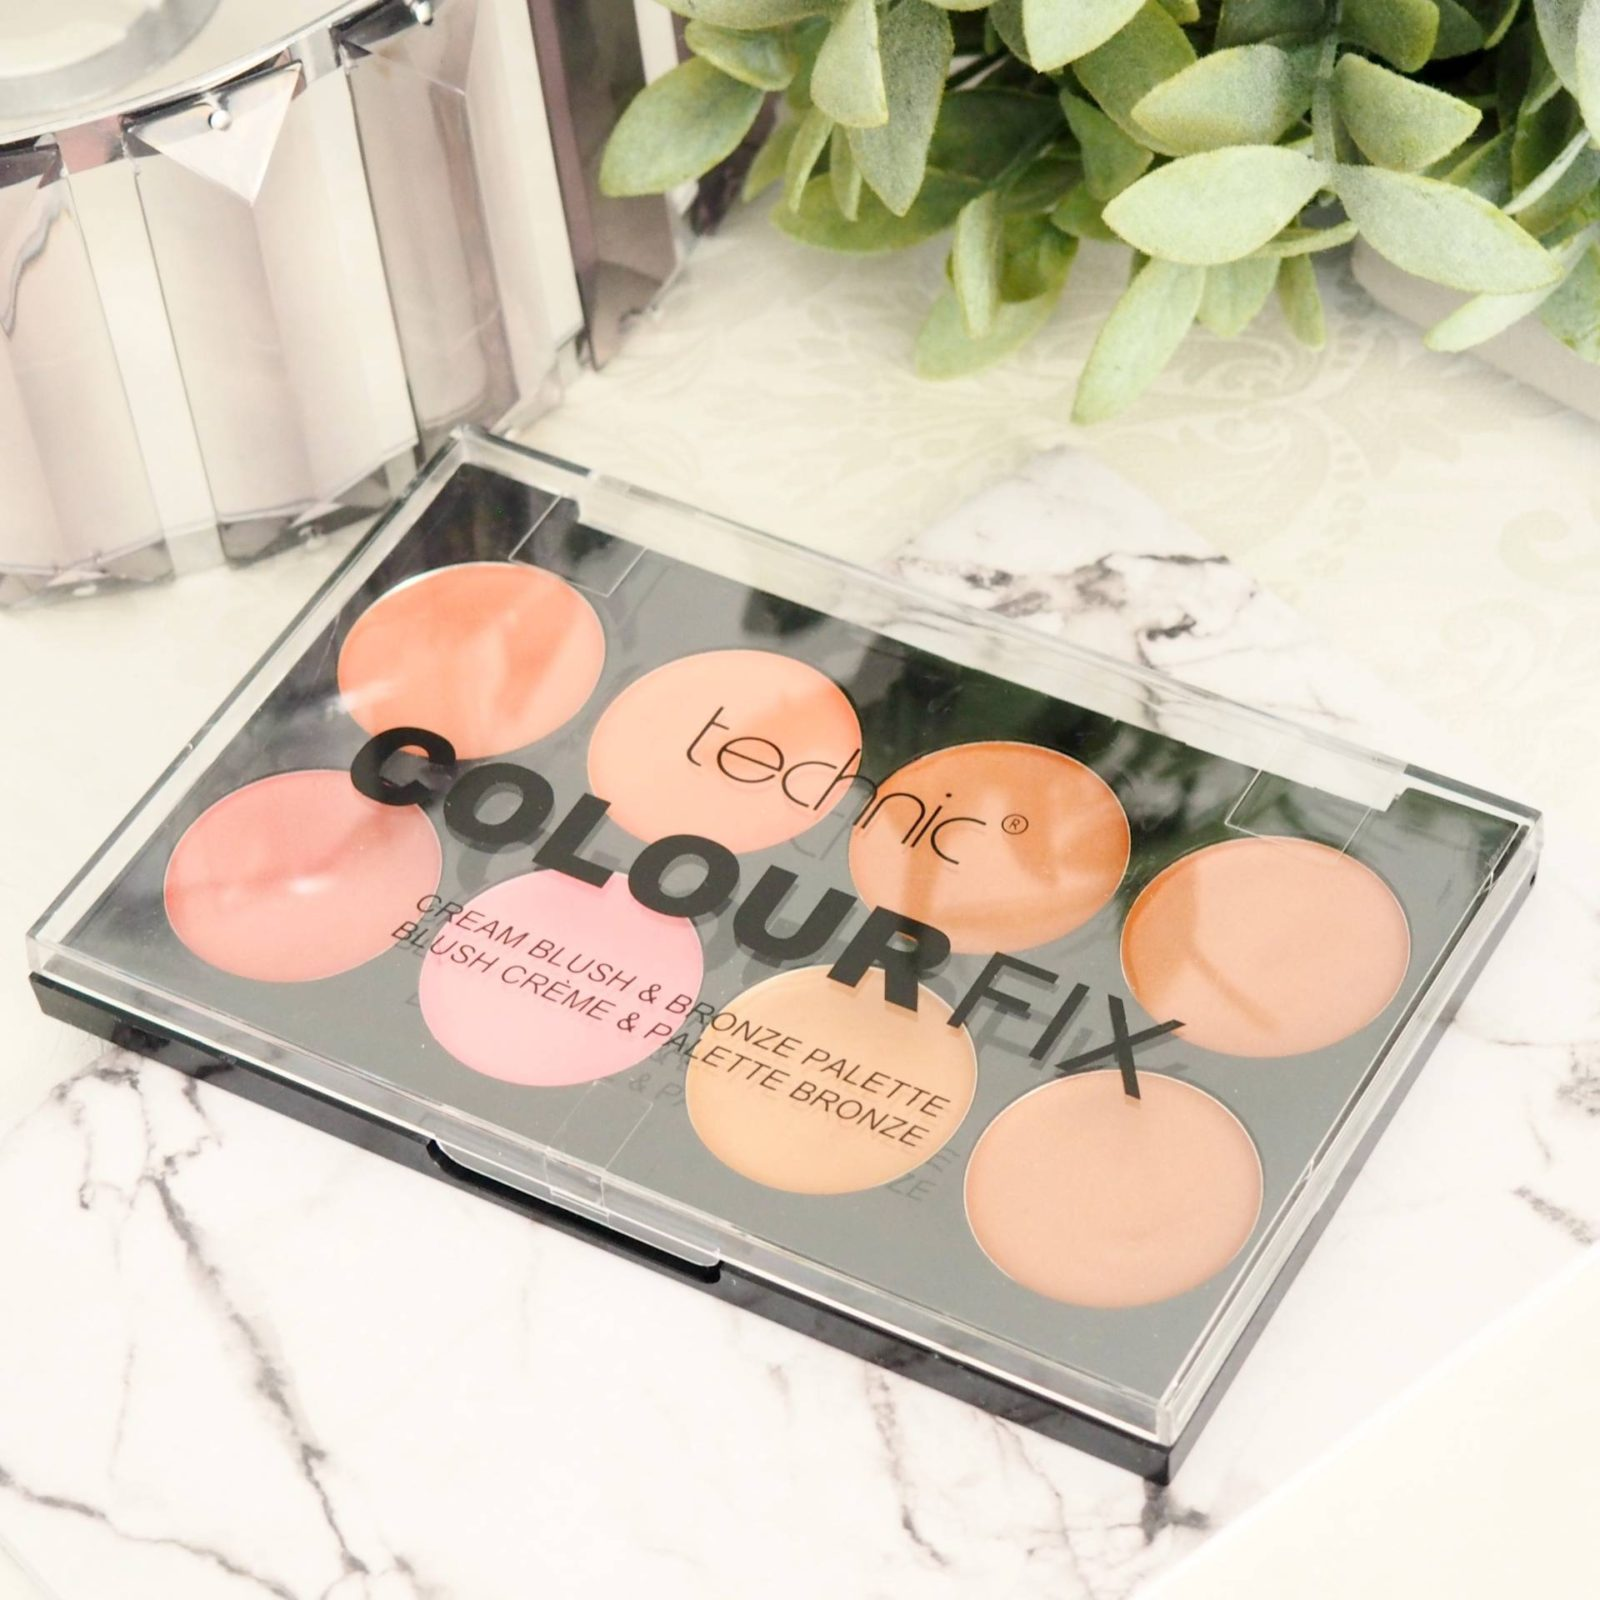 Technic Colour Fix Cream Palette